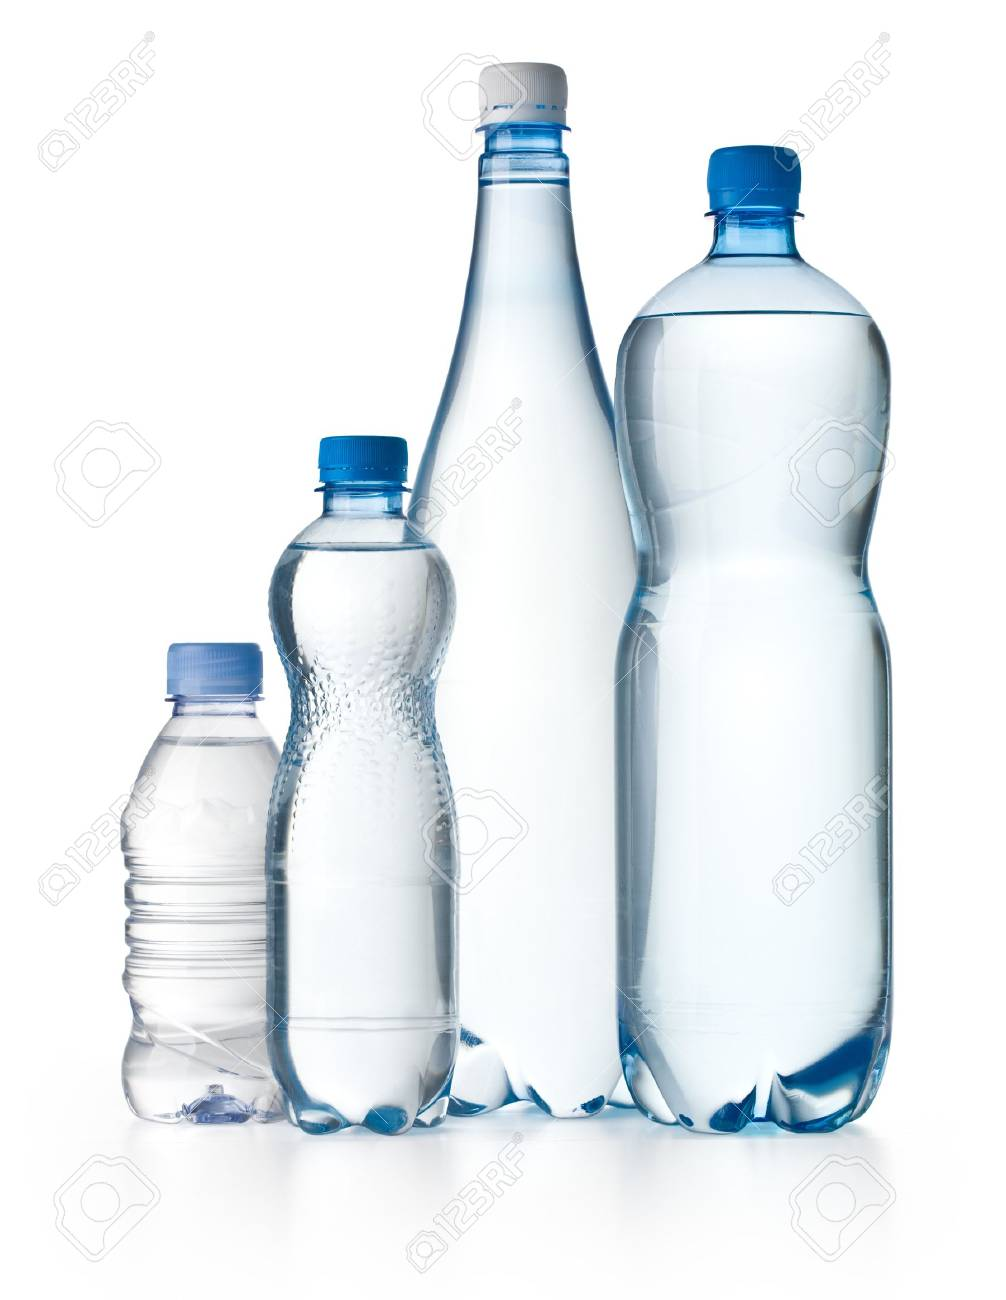 Different water bottles isolated on white Stock Photo - 20984327